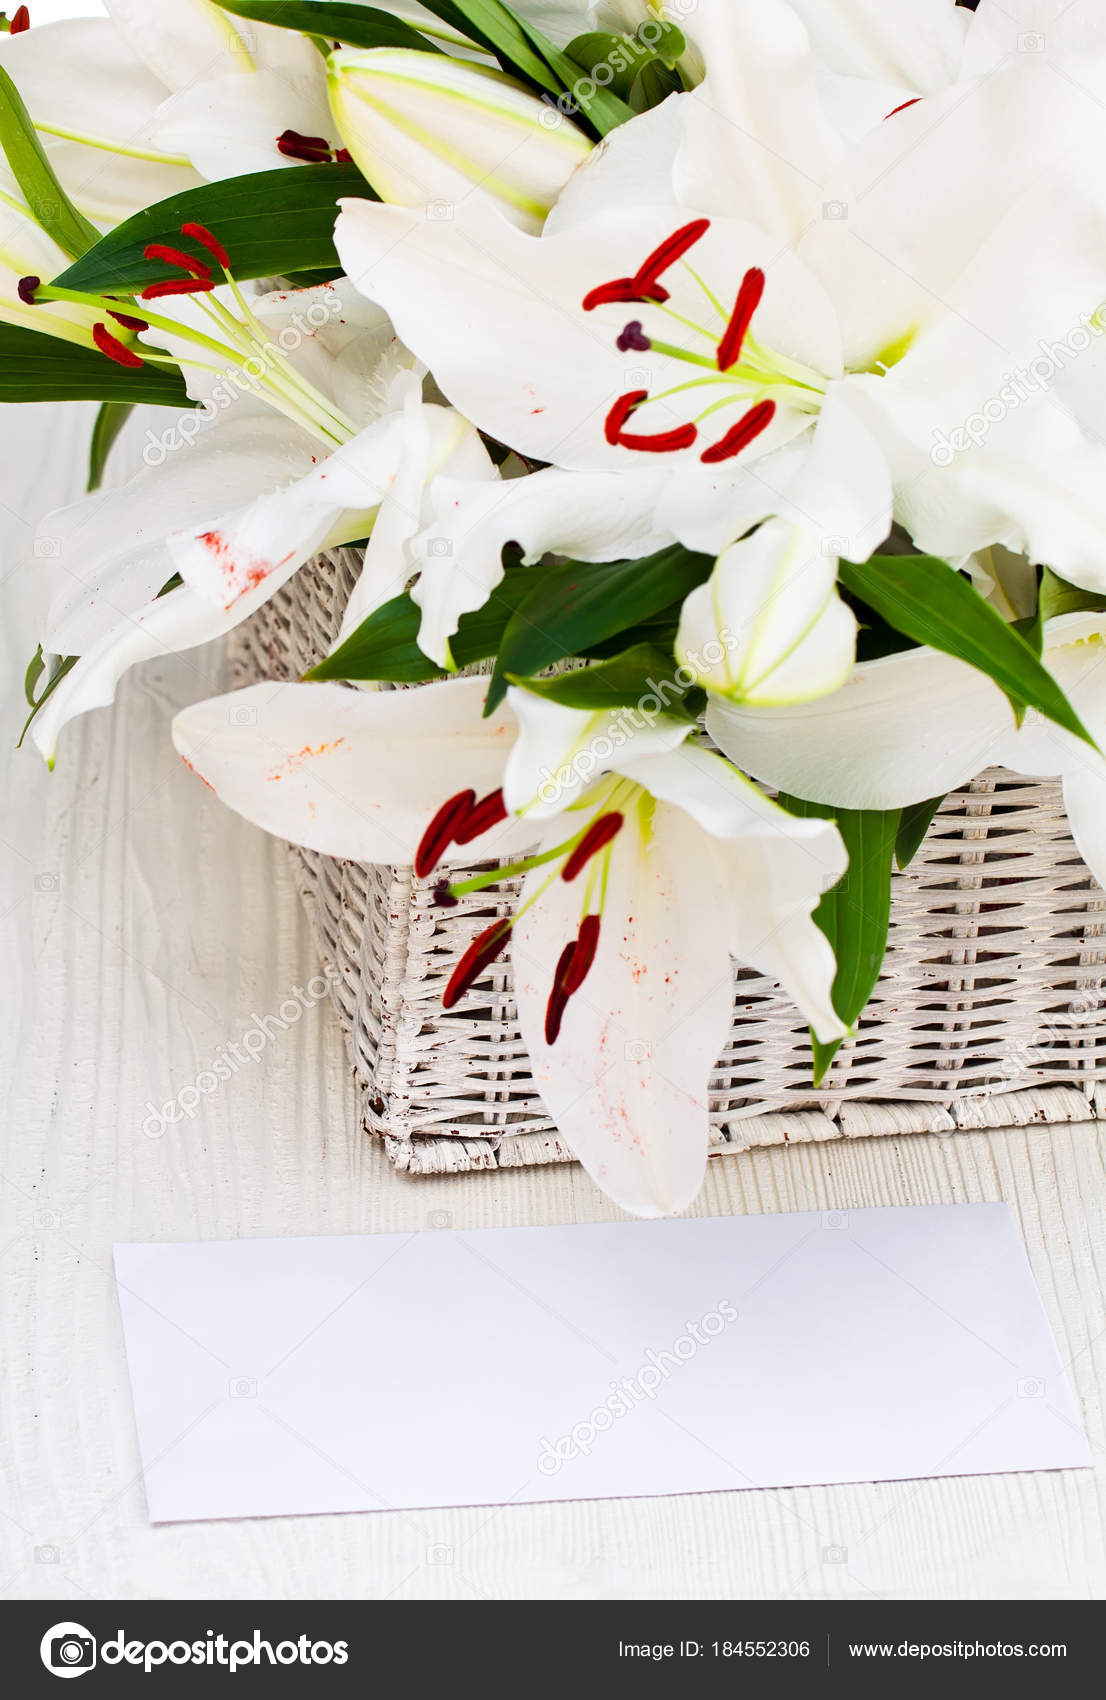 Old Basket With Lily Flowers Bouquet On Wooden Table With White